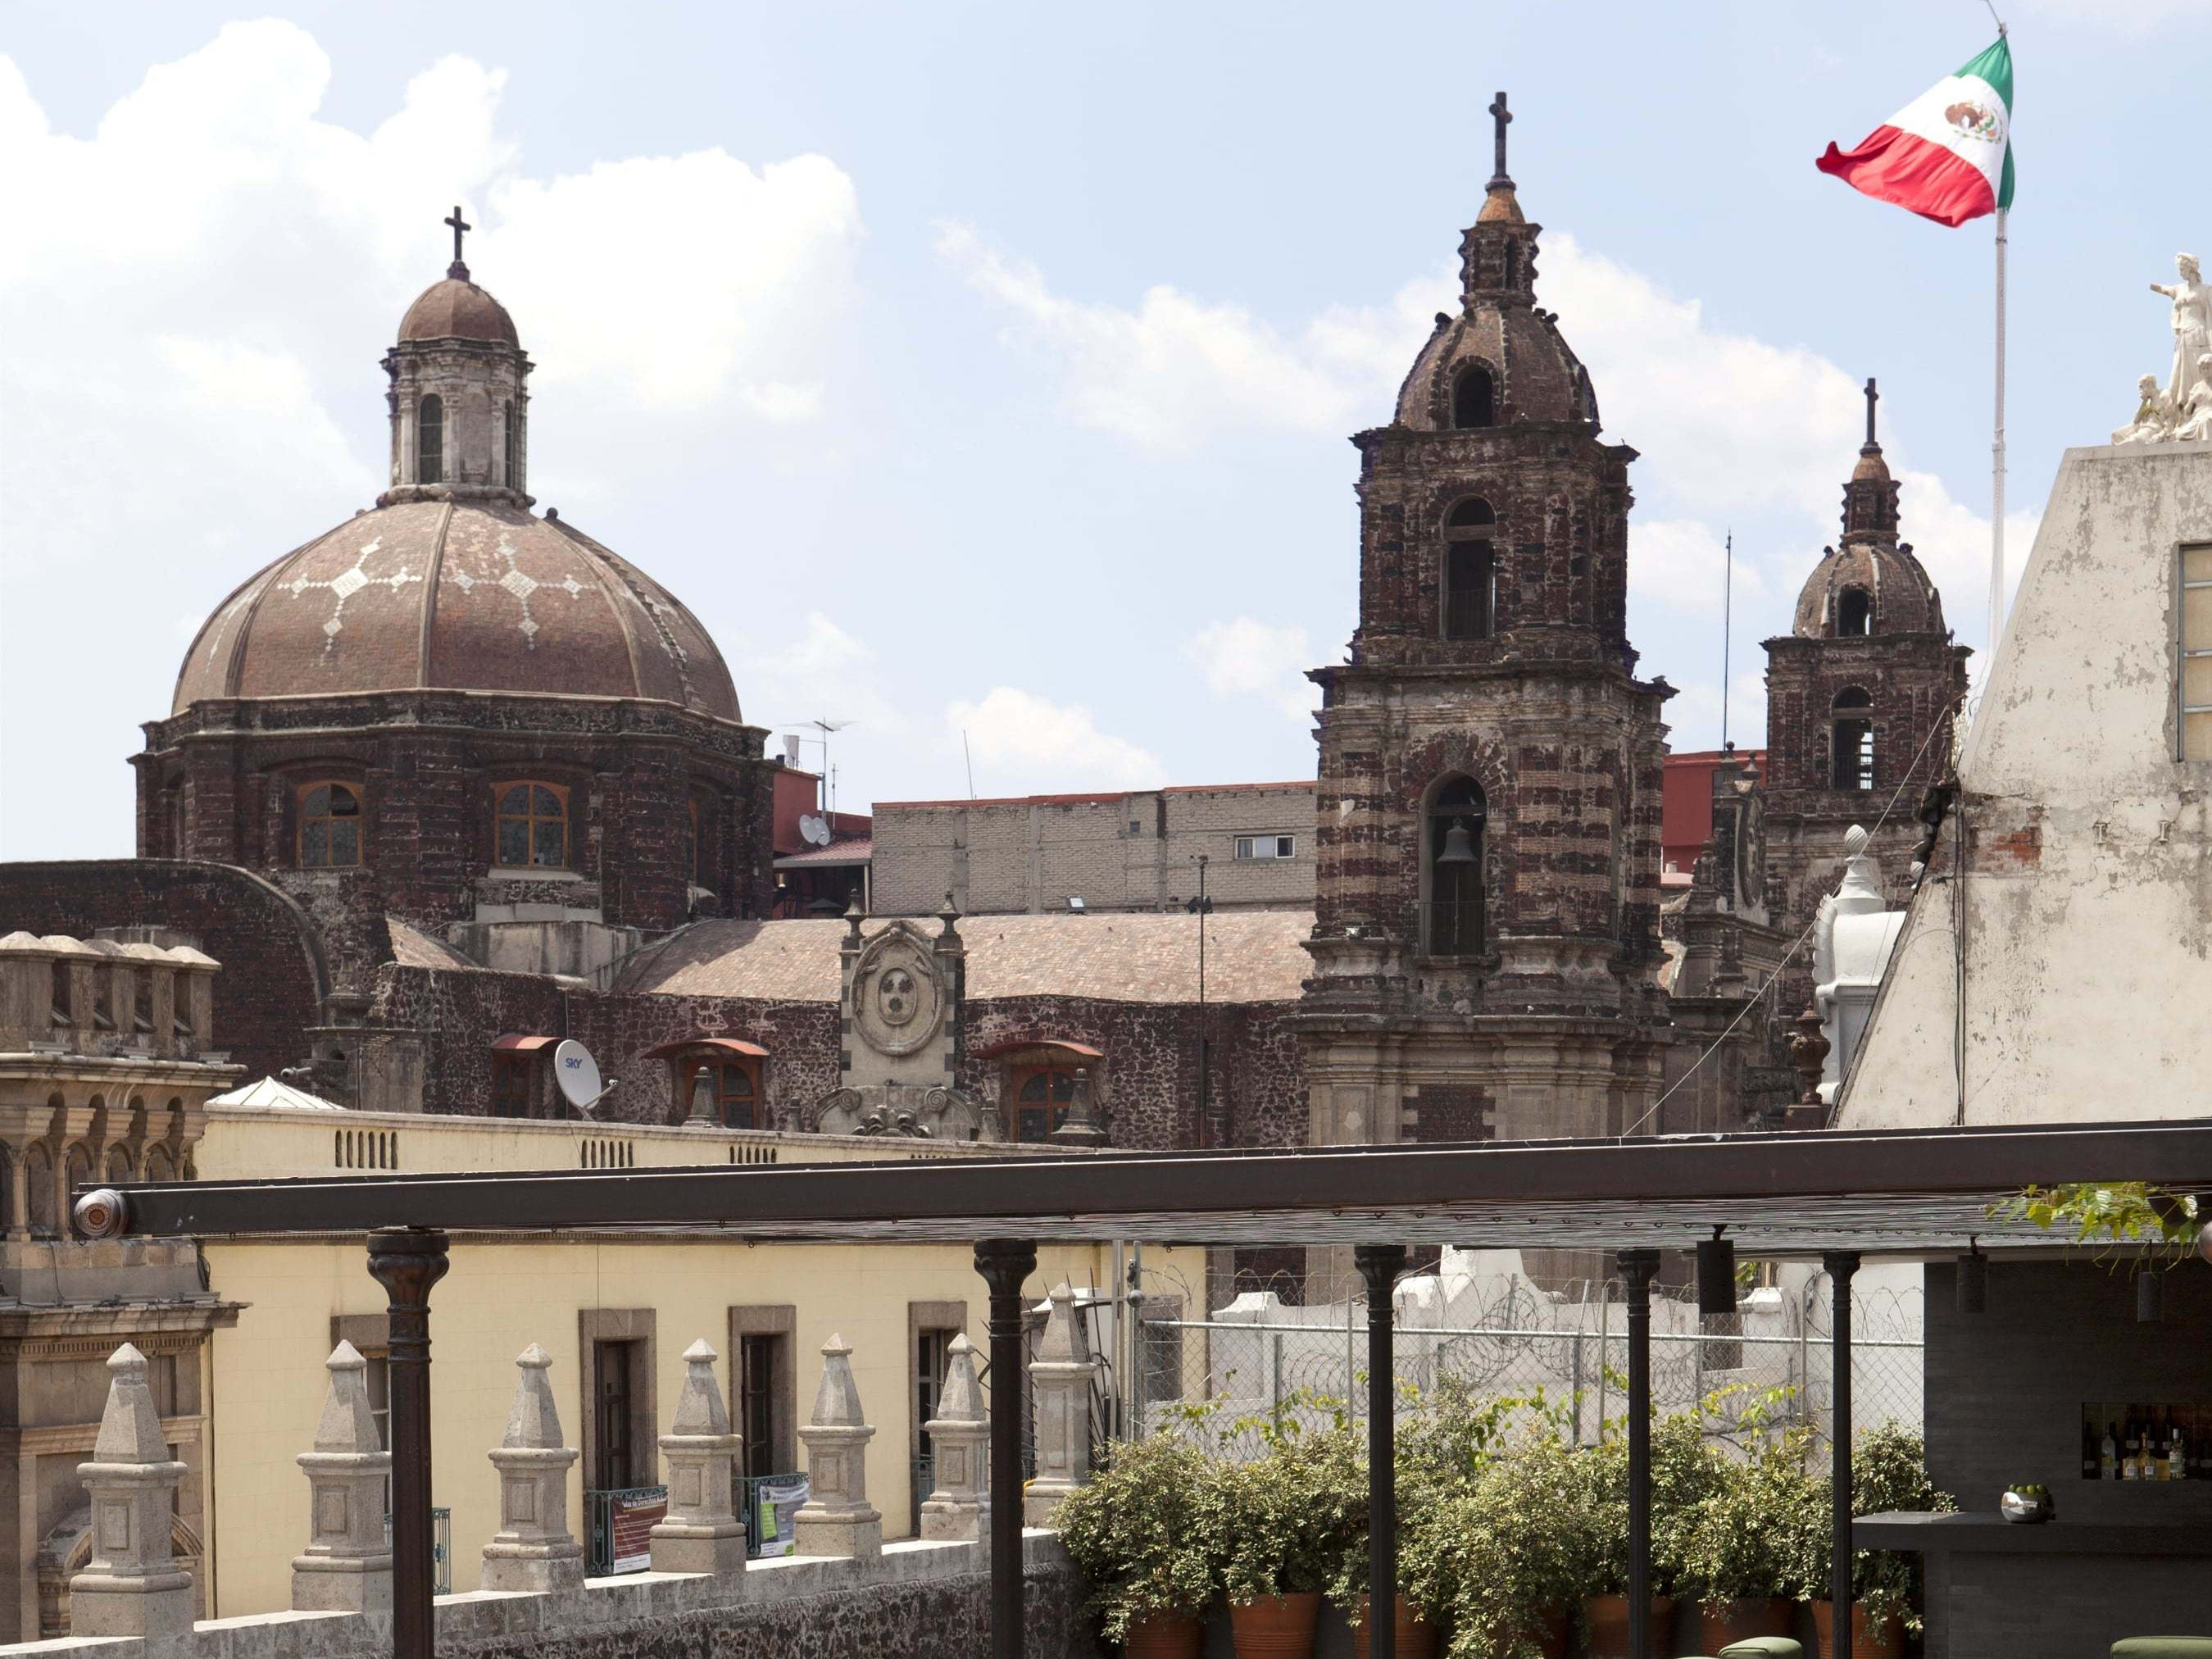 Mexico City's Centro Histórico faced a fate similar to those of other major historic downtowns in Latin America, and was left to deteriorate for decades during the 20th century. The area has seen major revitalization in the past 10 or 20 years, however, and it shows - many of the neighborhood's historic buildings are being restored and reused.